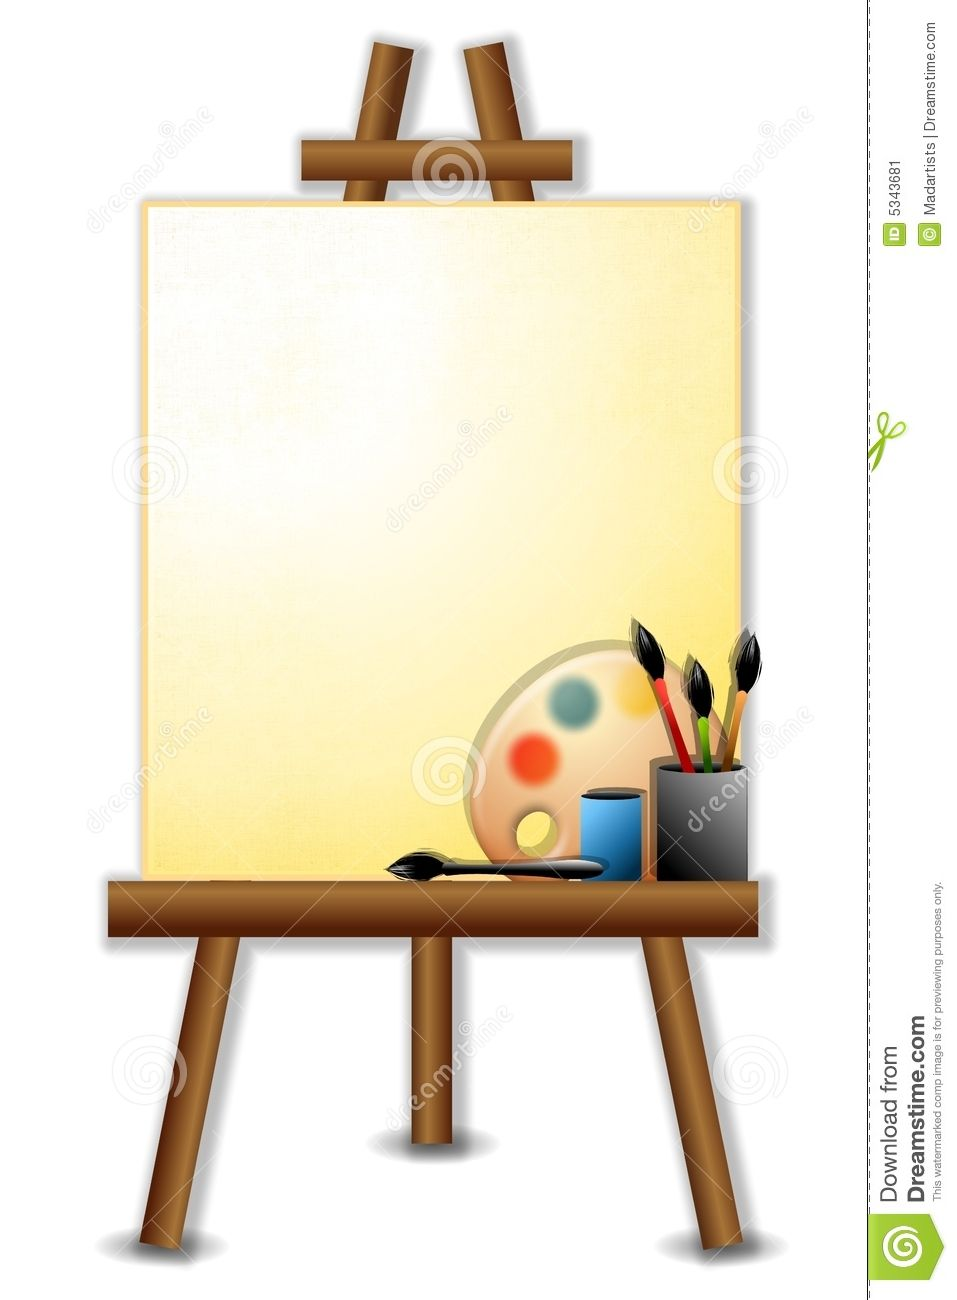 Art easel paint holder clipart clipart images gallery for.